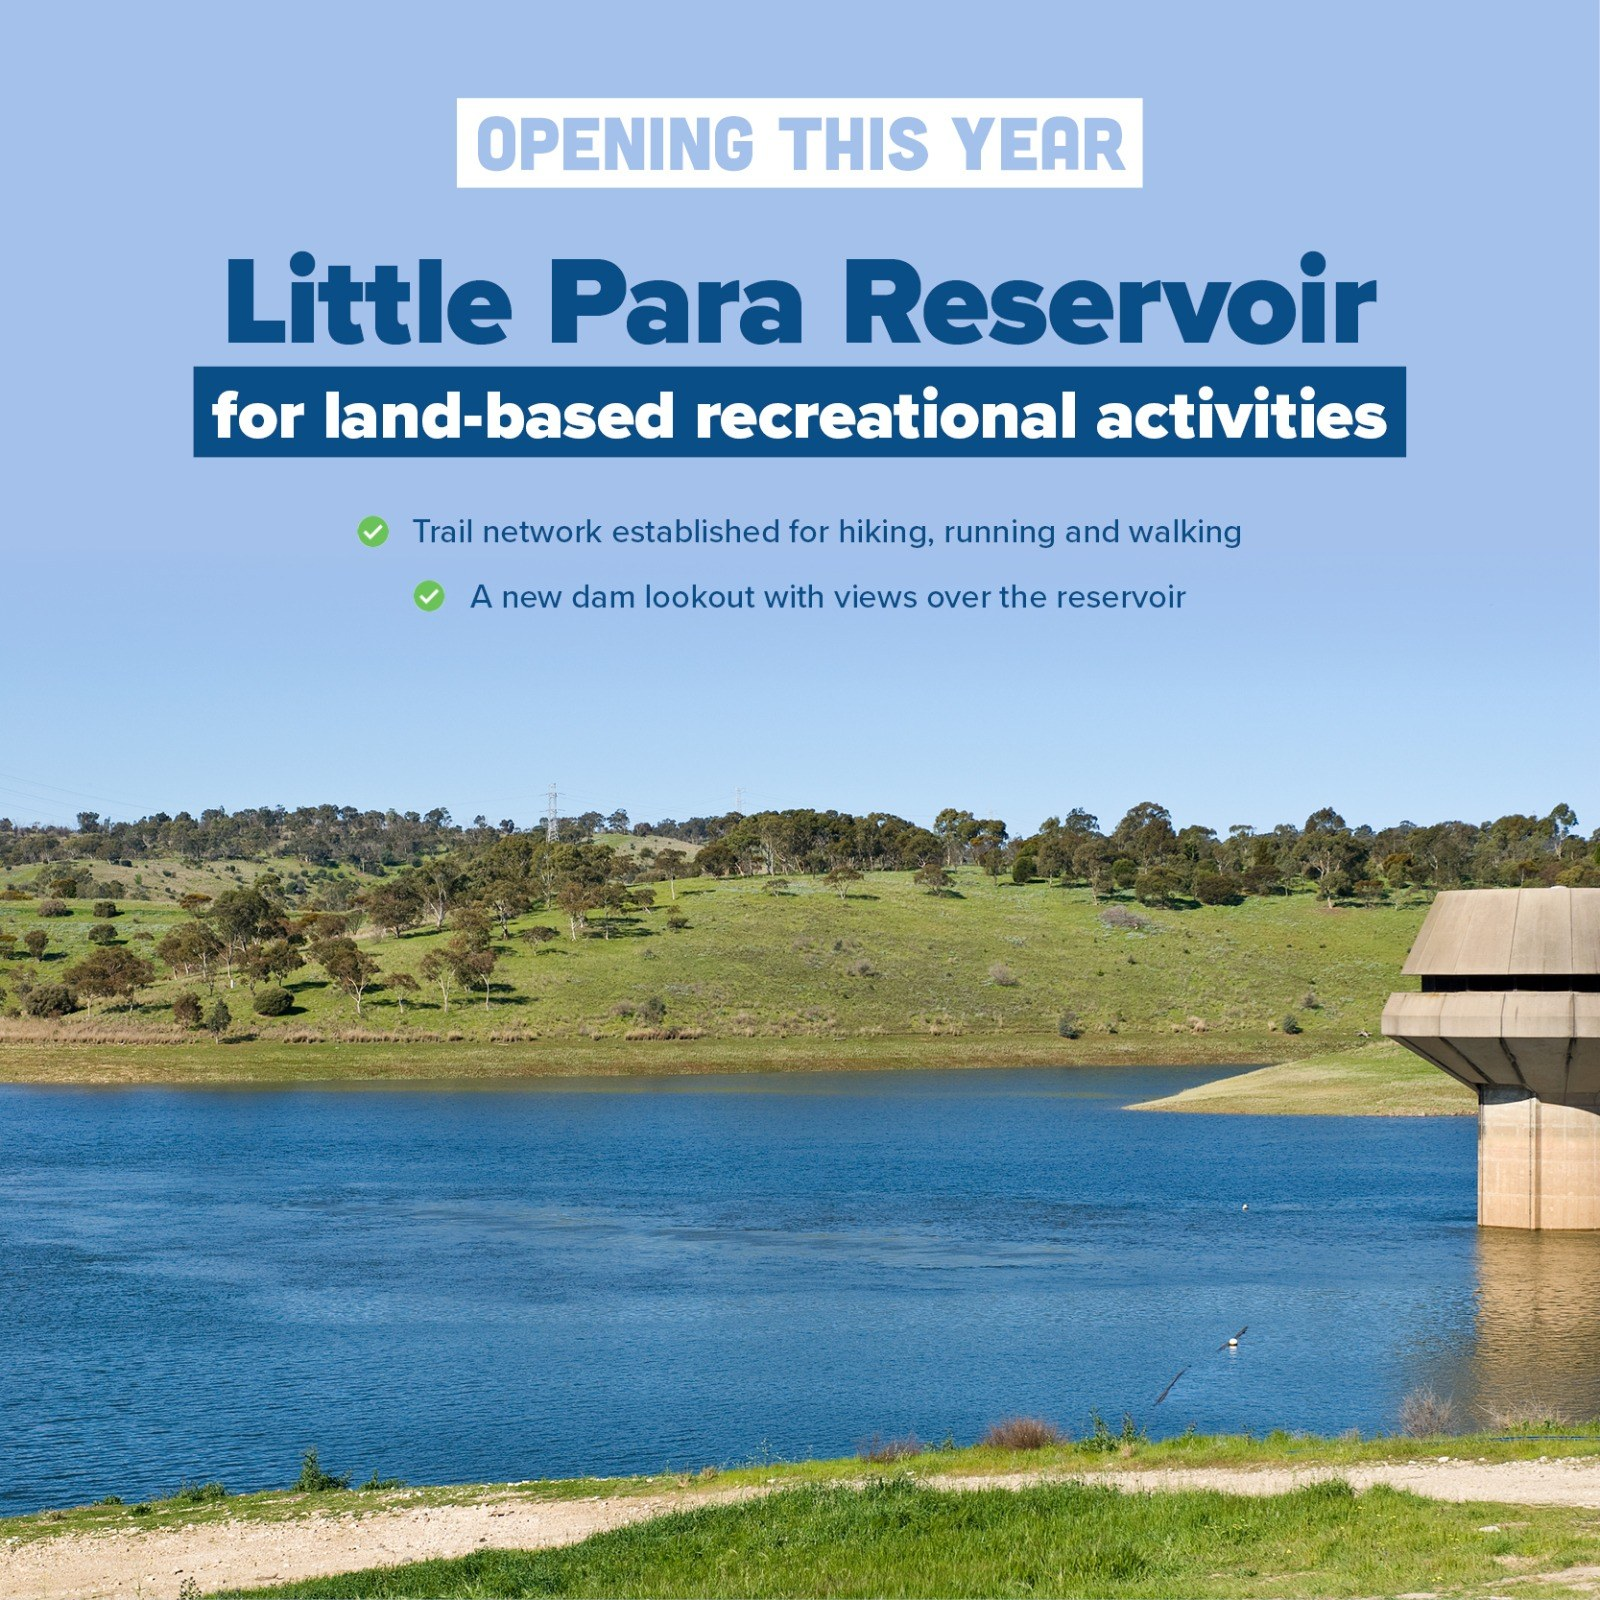 Little Para Reservoir Opening This Year